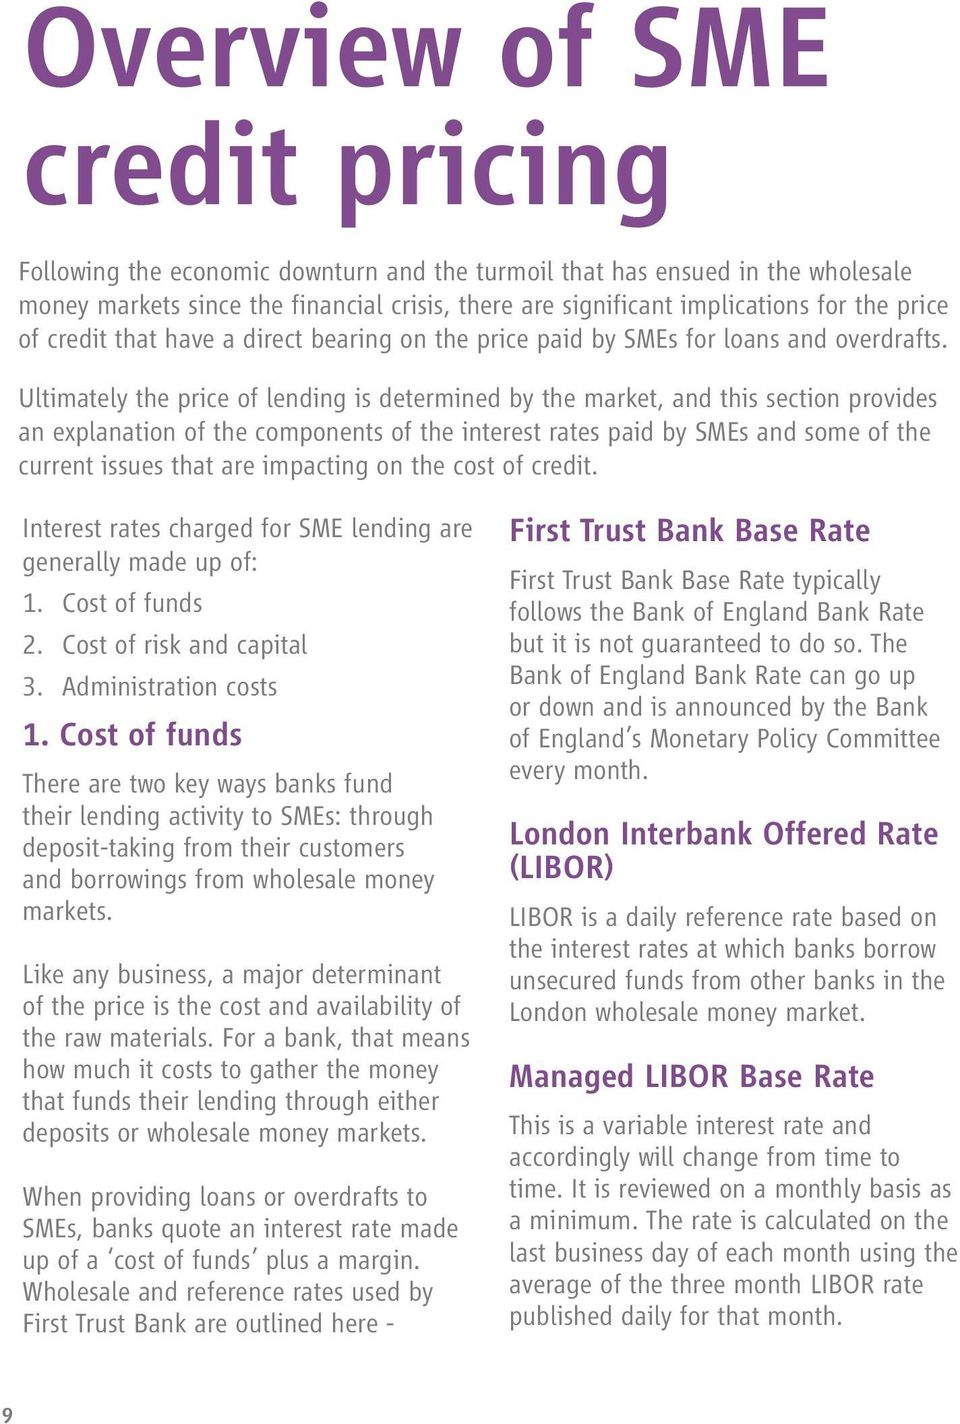 Ultimately the price of lending is determined by the market, and this section provides an explanation of the components of the interest rates paid by SMEs and some of the current issues that are